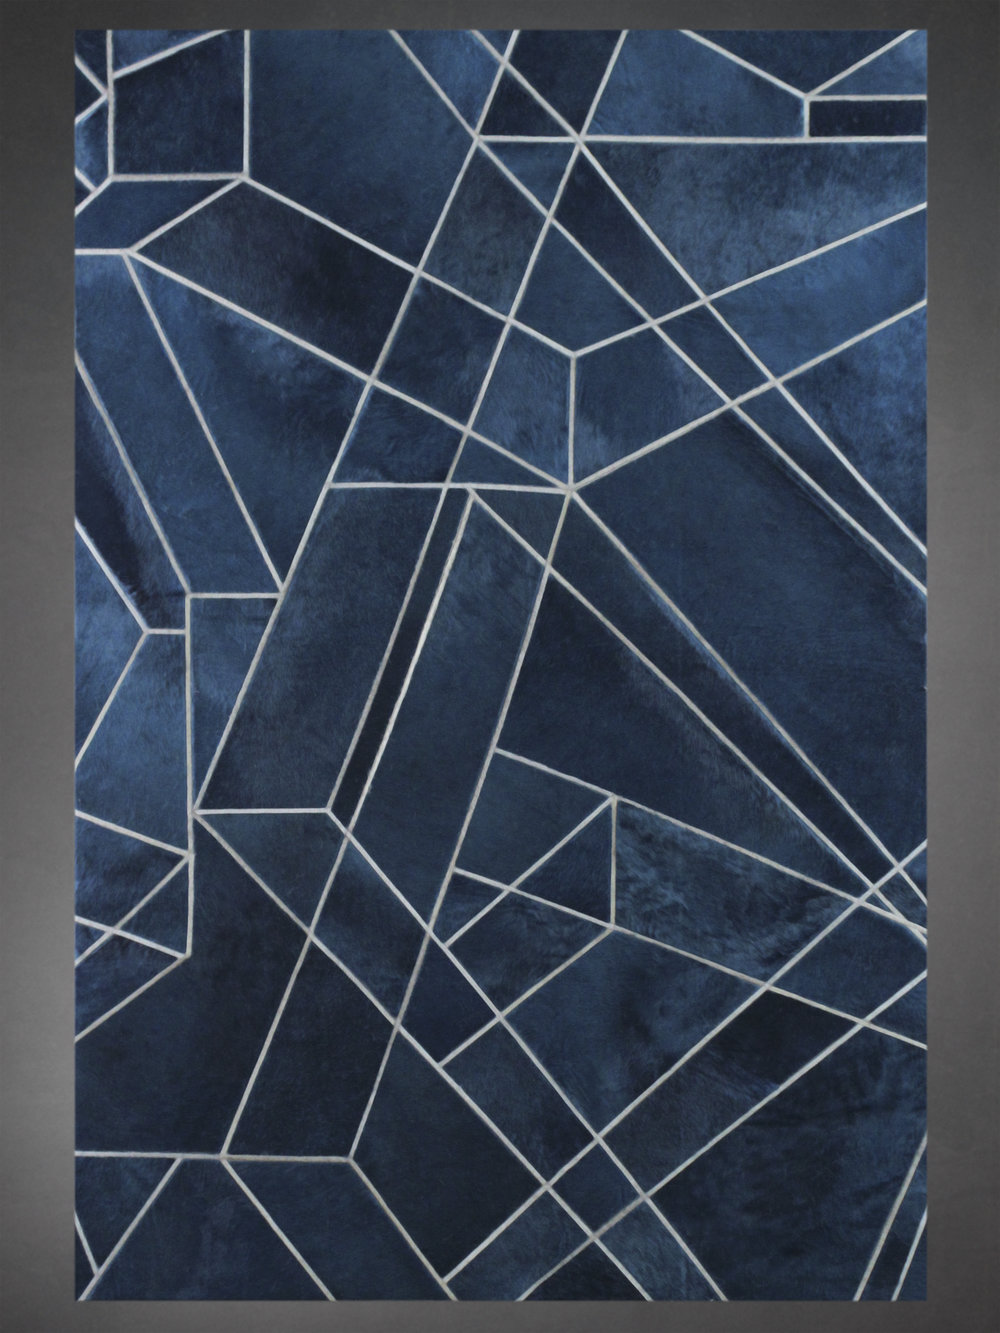 Contemporary designed fur rug in the Perspective style by Yerra in petroleum and stone blues.